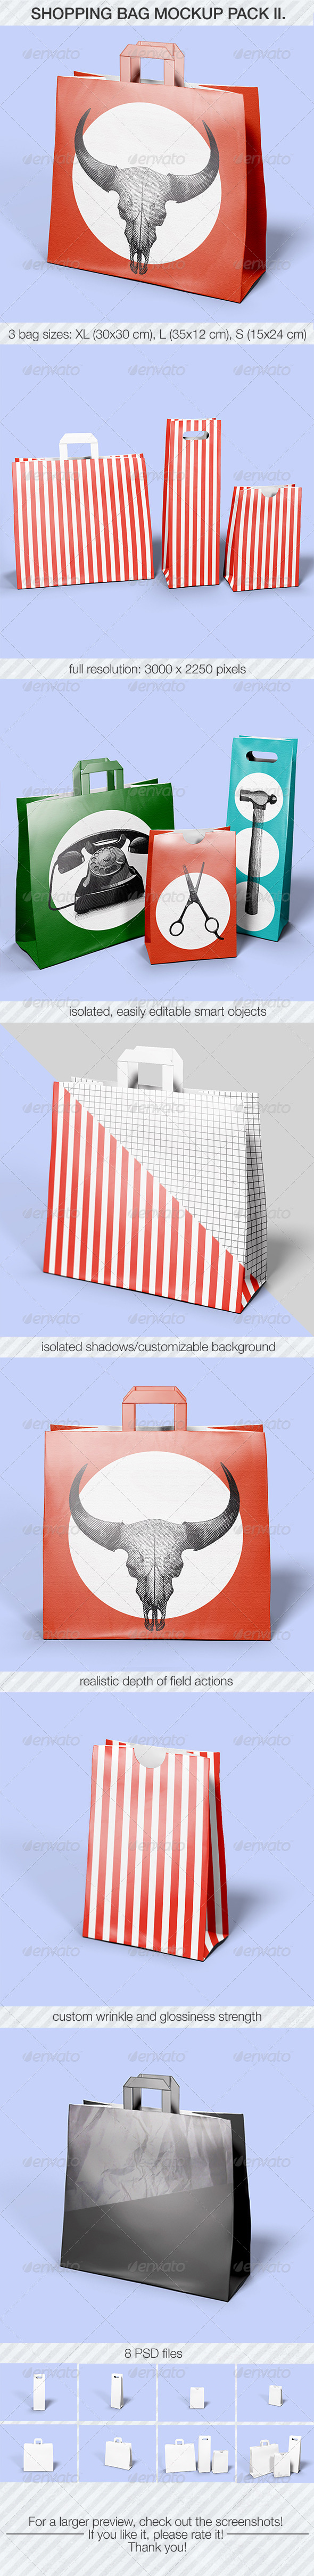 Shopping Bag Mockup Pack II